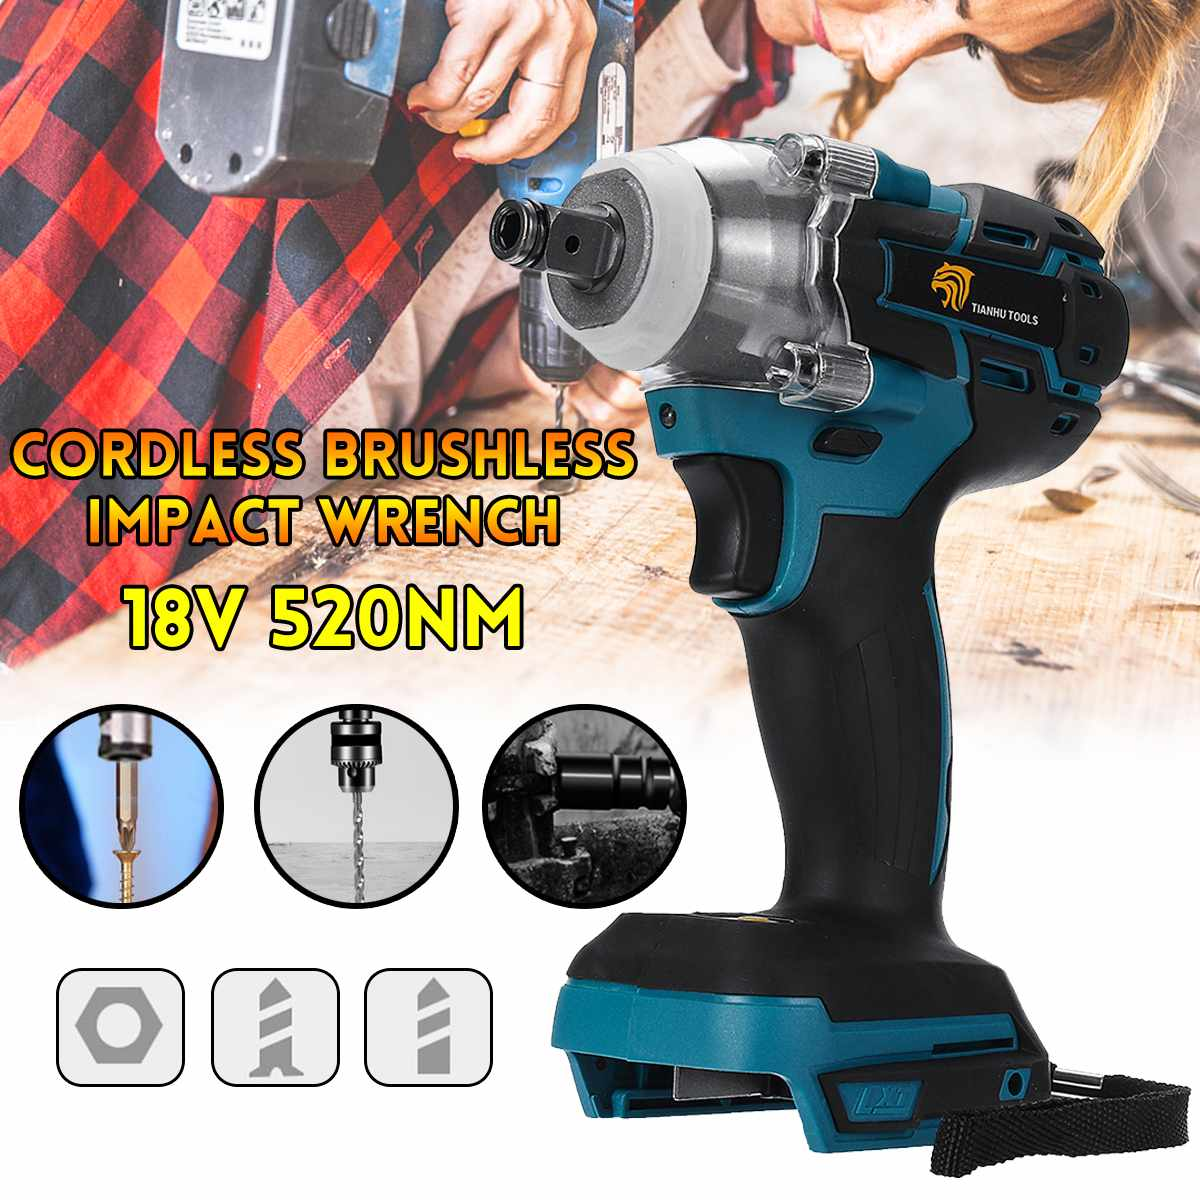 Brushless Cordless Electric Impact Wrench 18V 520Nm Makita Battery Socket Wrench Power Tool Wireless Batteryless and Accessories